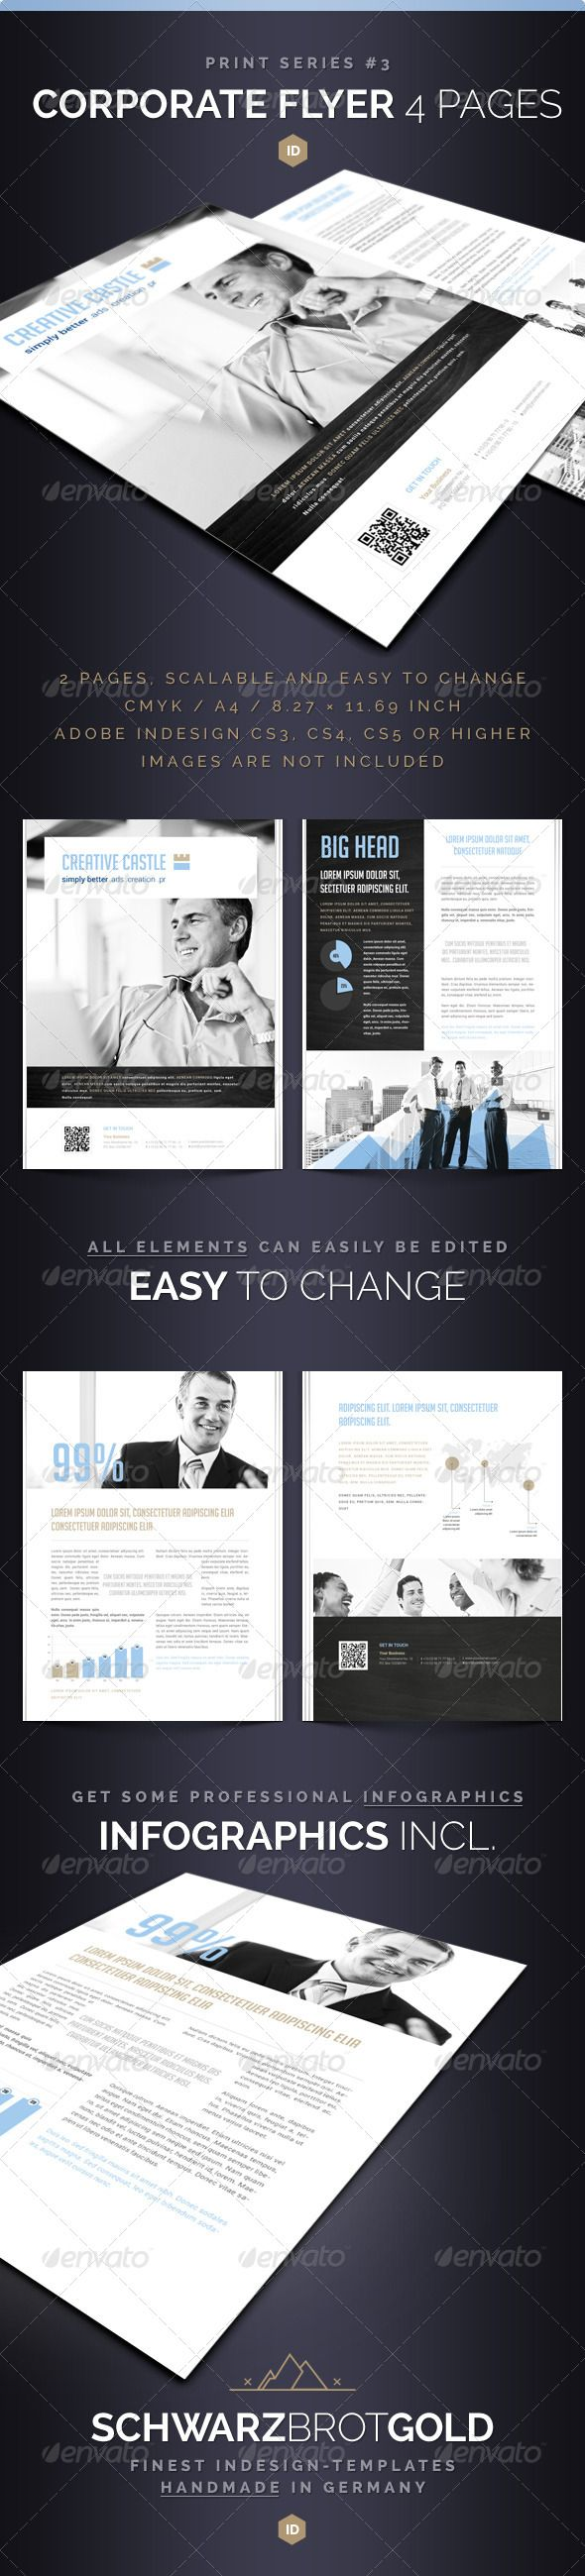 Corporate Flyer 4 Pages Series 3 #GraphicRiver If you like this, watch out the other Items of this Series Corporate Flyer 4 Pages Series 3 InDesign CS3 / CS4 / CS5 Hello! Thank you very much for purchasing this File. This multi-purpose 4 Page Flyer Template is available in InDesign CS3.inx, CS4.idml and CS5.indd-Format. All Texts and Images have been placed on separate Layers. Our Design can be used as a Template for Flyers, (Online-) PDF Files, Covers, Magazines, Styles, Leaflets, Corporate…